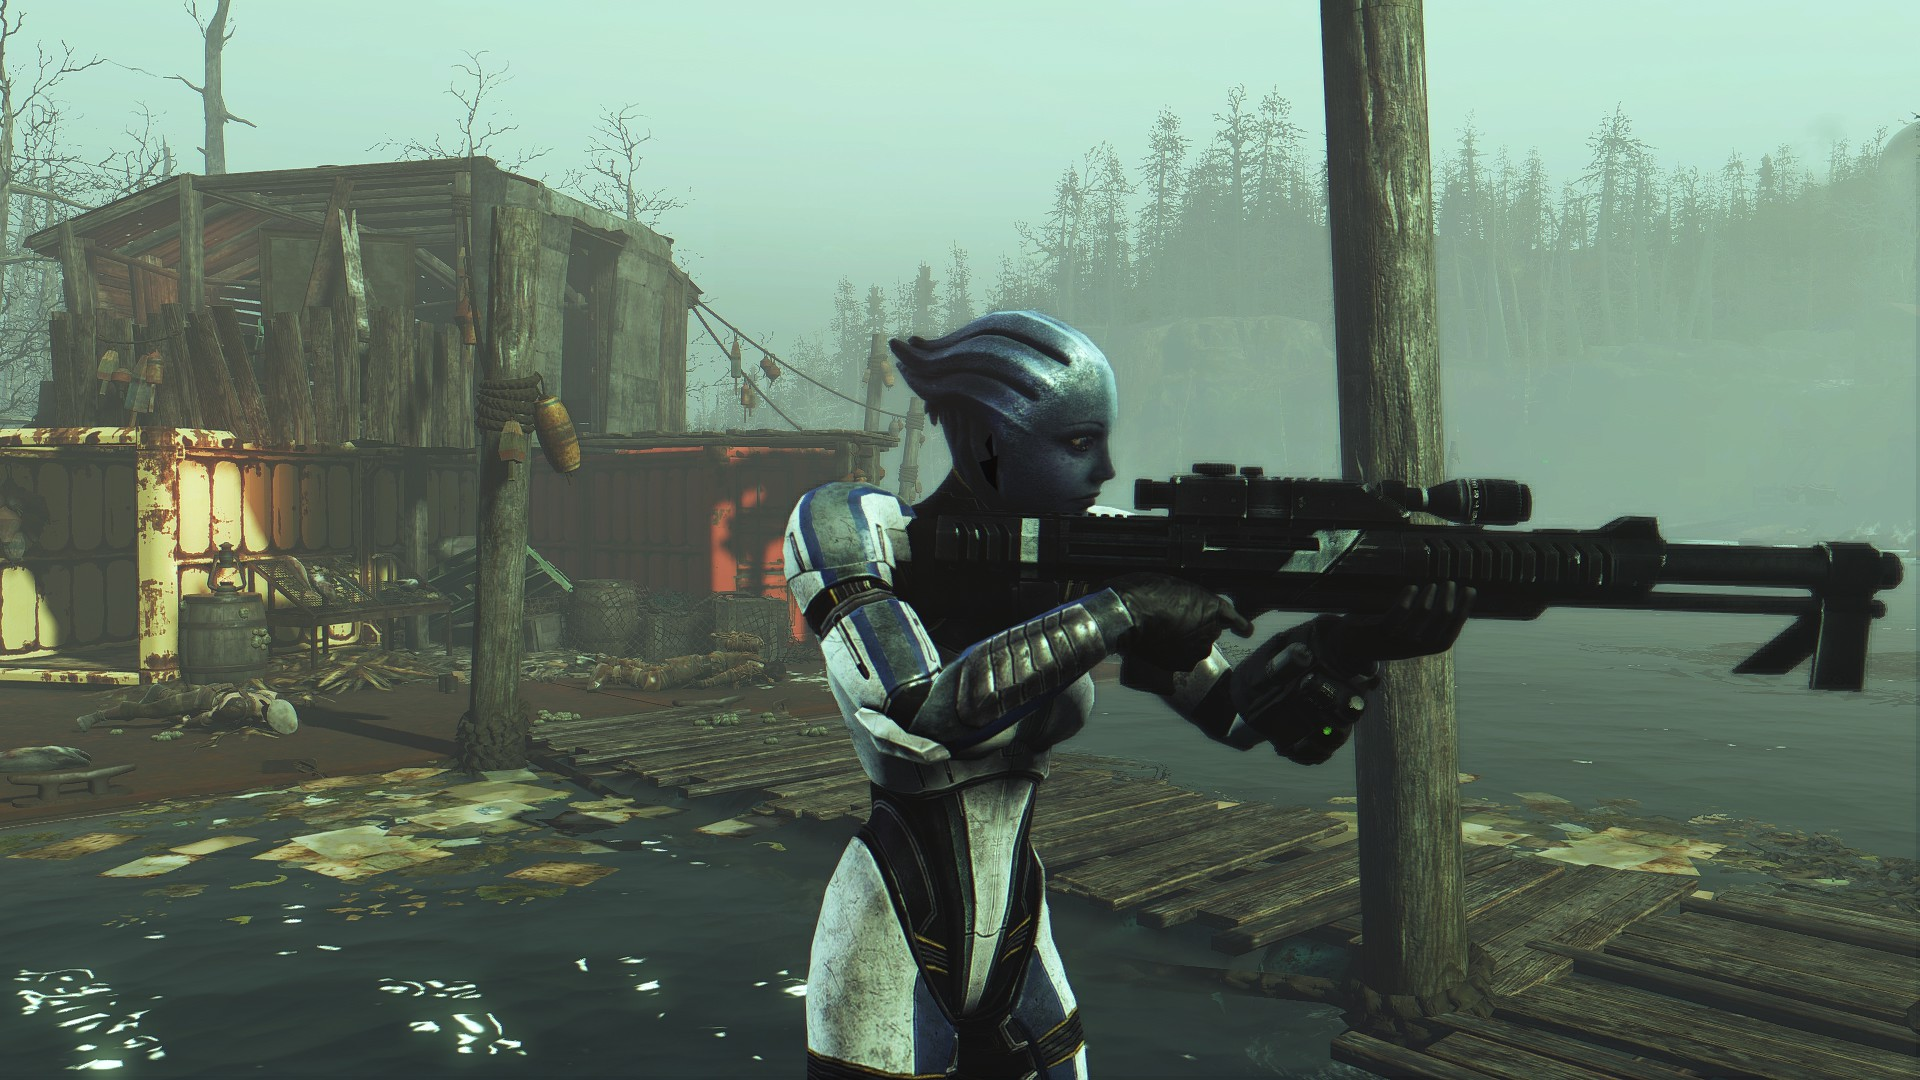 Mass Effect 3 Weapons Pack 1 For Fallout 4 By Shiala92 On